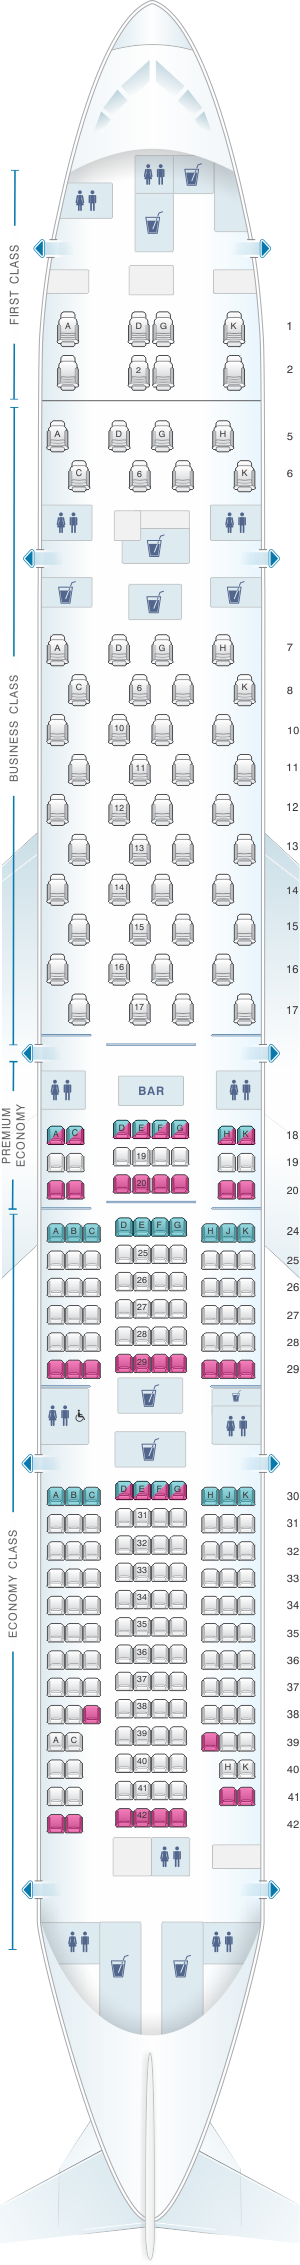 Seat map for ANA - All Nippon Airways Boeing B777 300ER 264pax